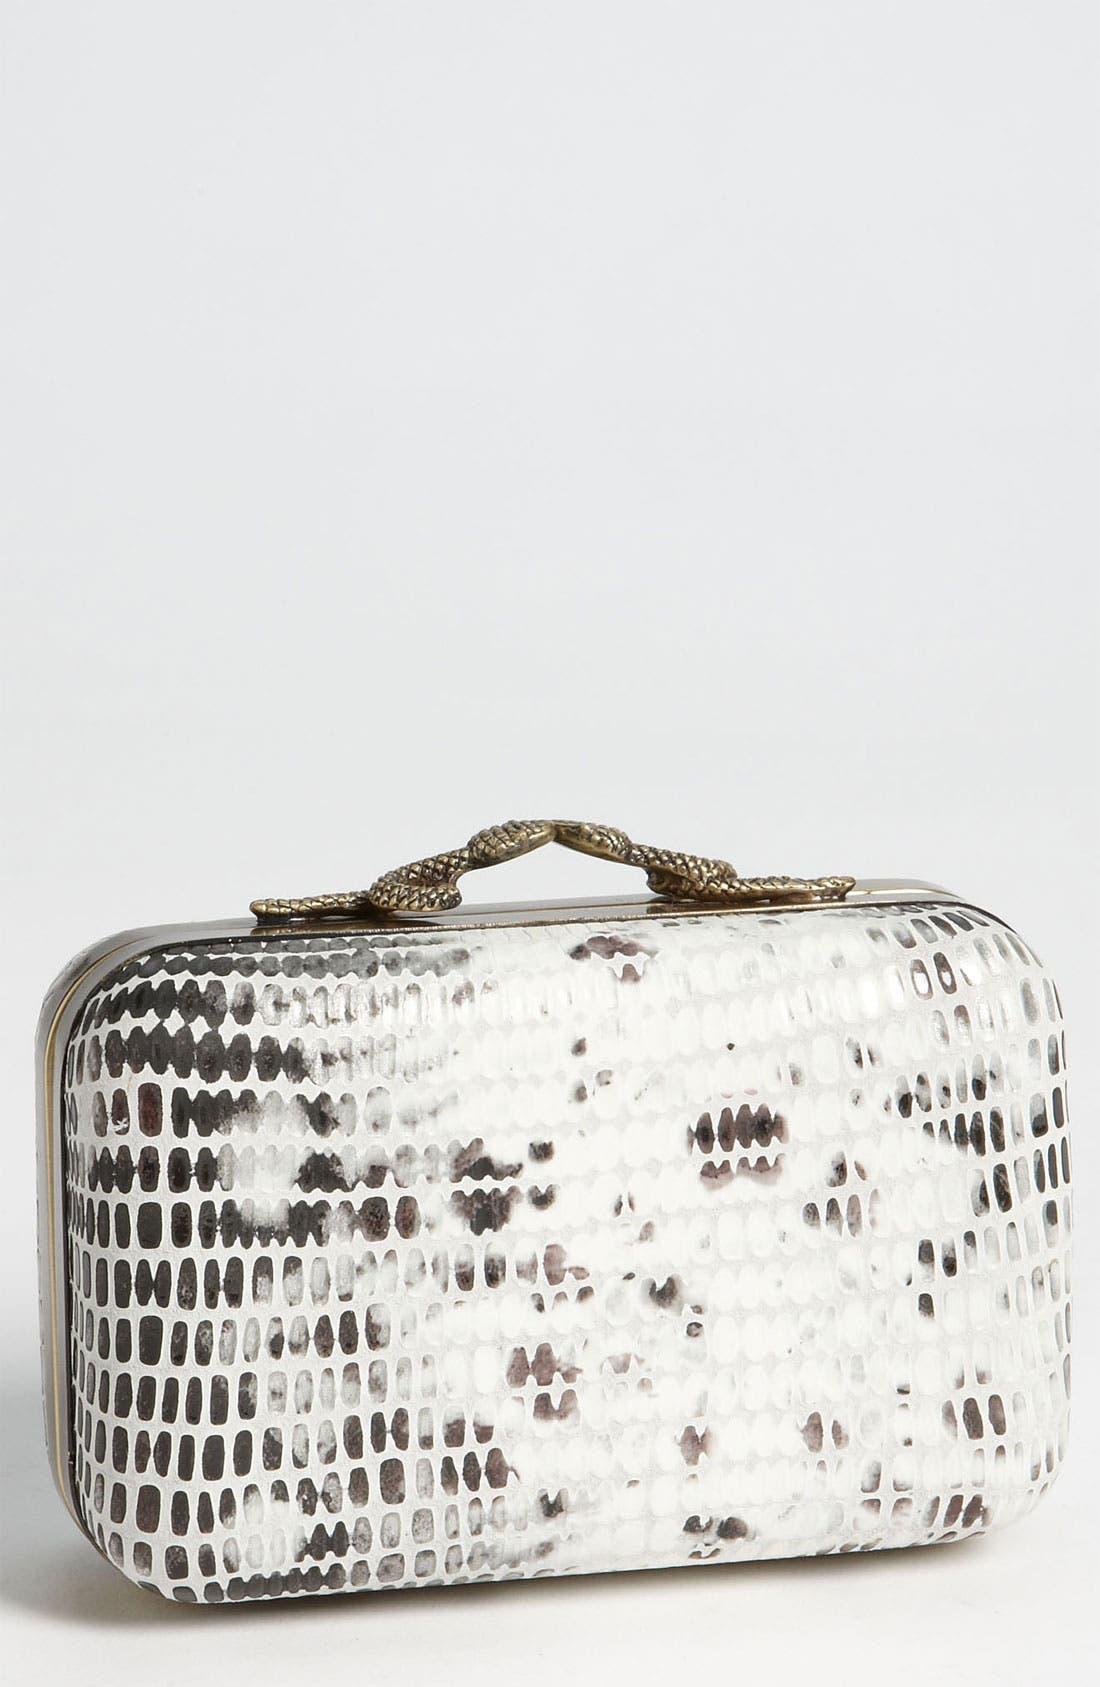 Alternate Image 1 Selected - House of Harlow 1960 'Marley' Clutch